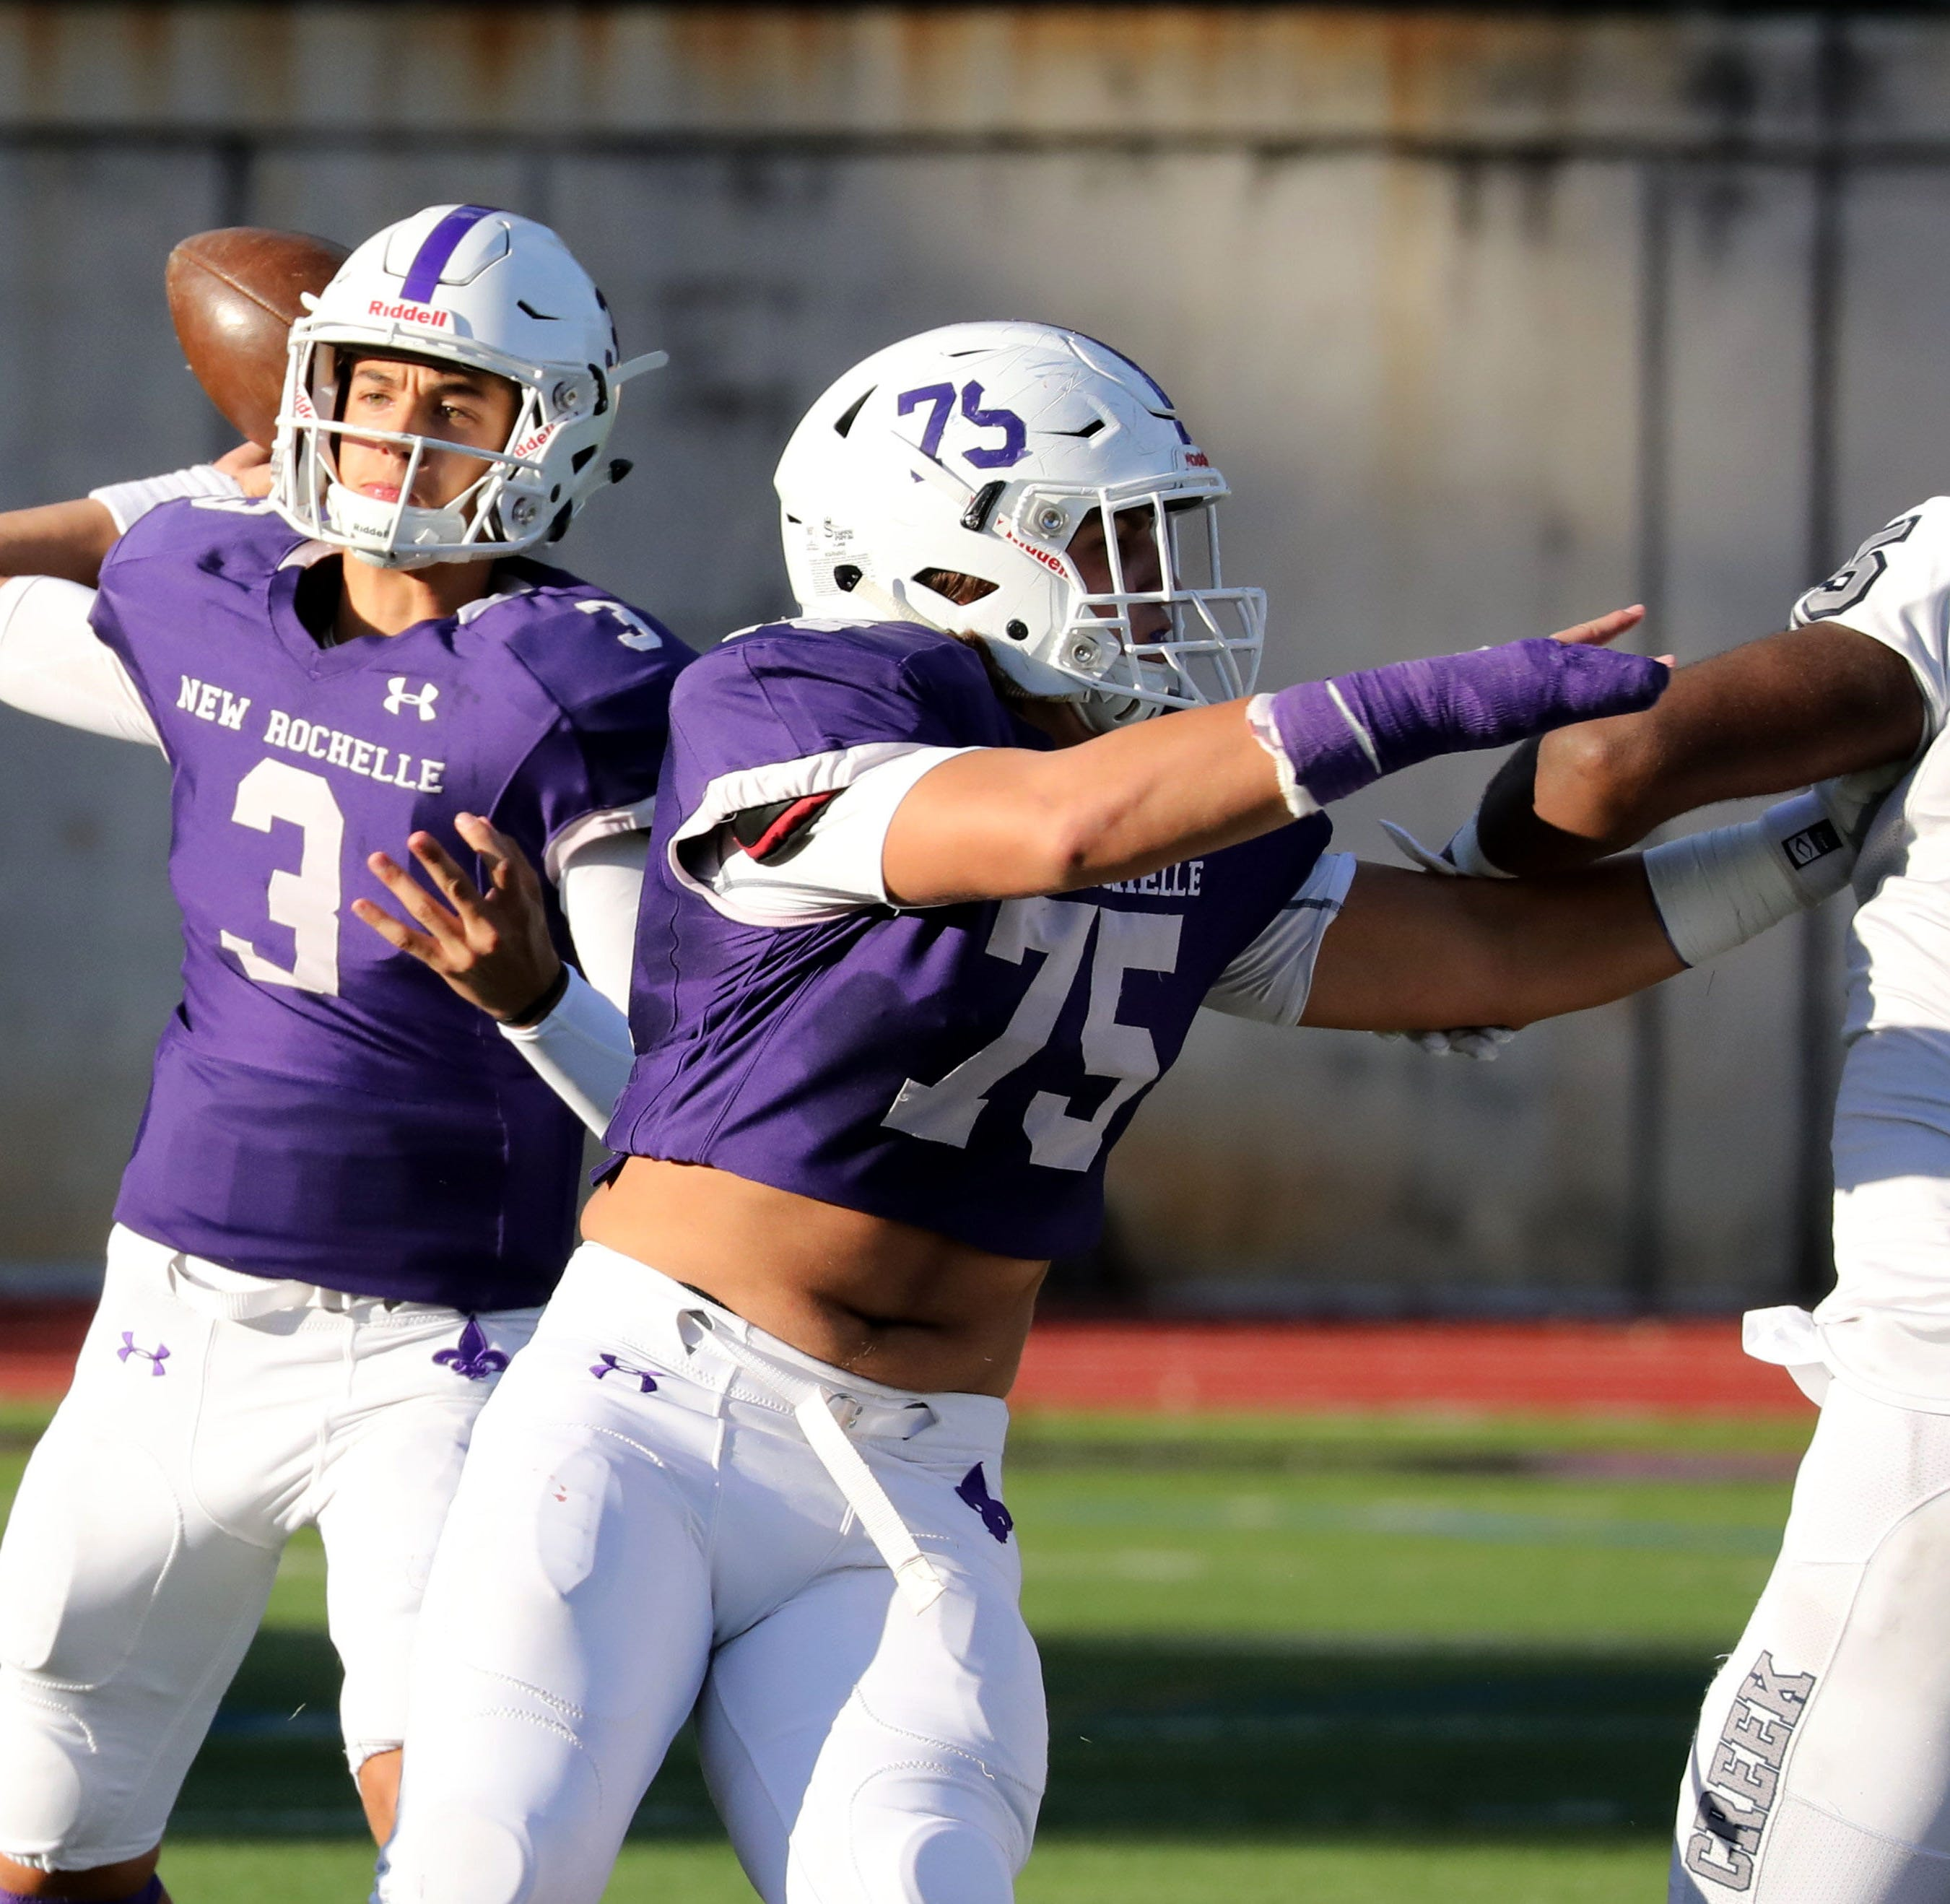 Football: Mac Coughlin's three TD passes net New Rochelle QB Player of the Week